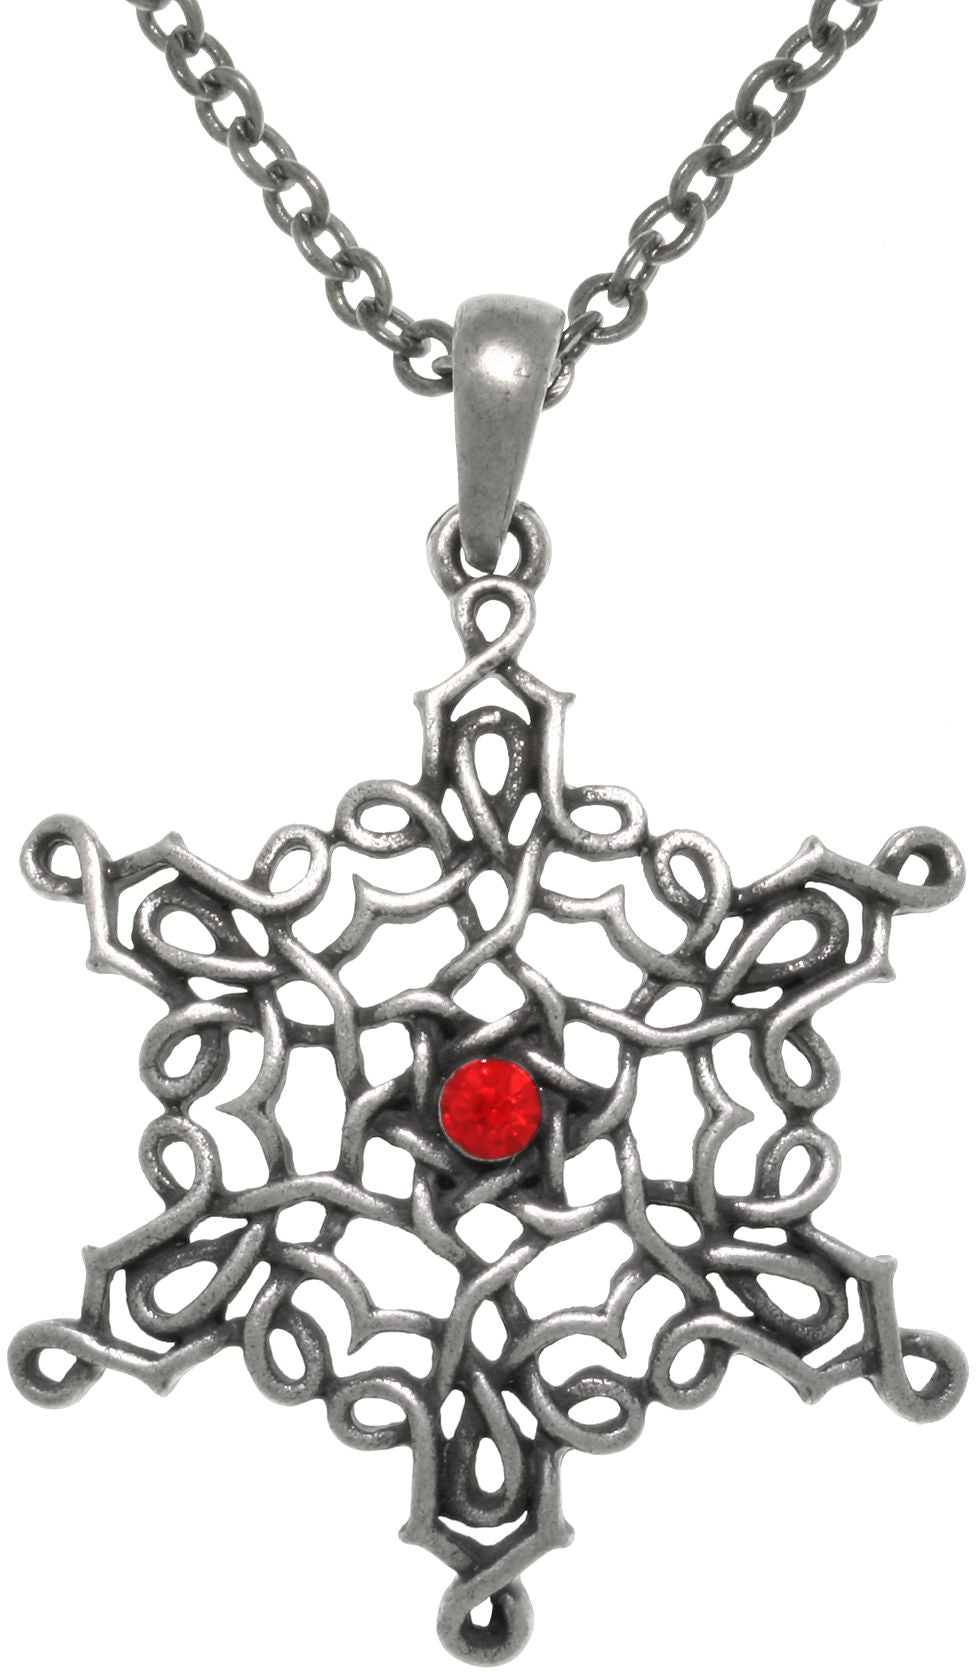 Jewelry Trends Pewter Celtic Knot Star Of Creation Pendant on 24 Inch Chain Necklace